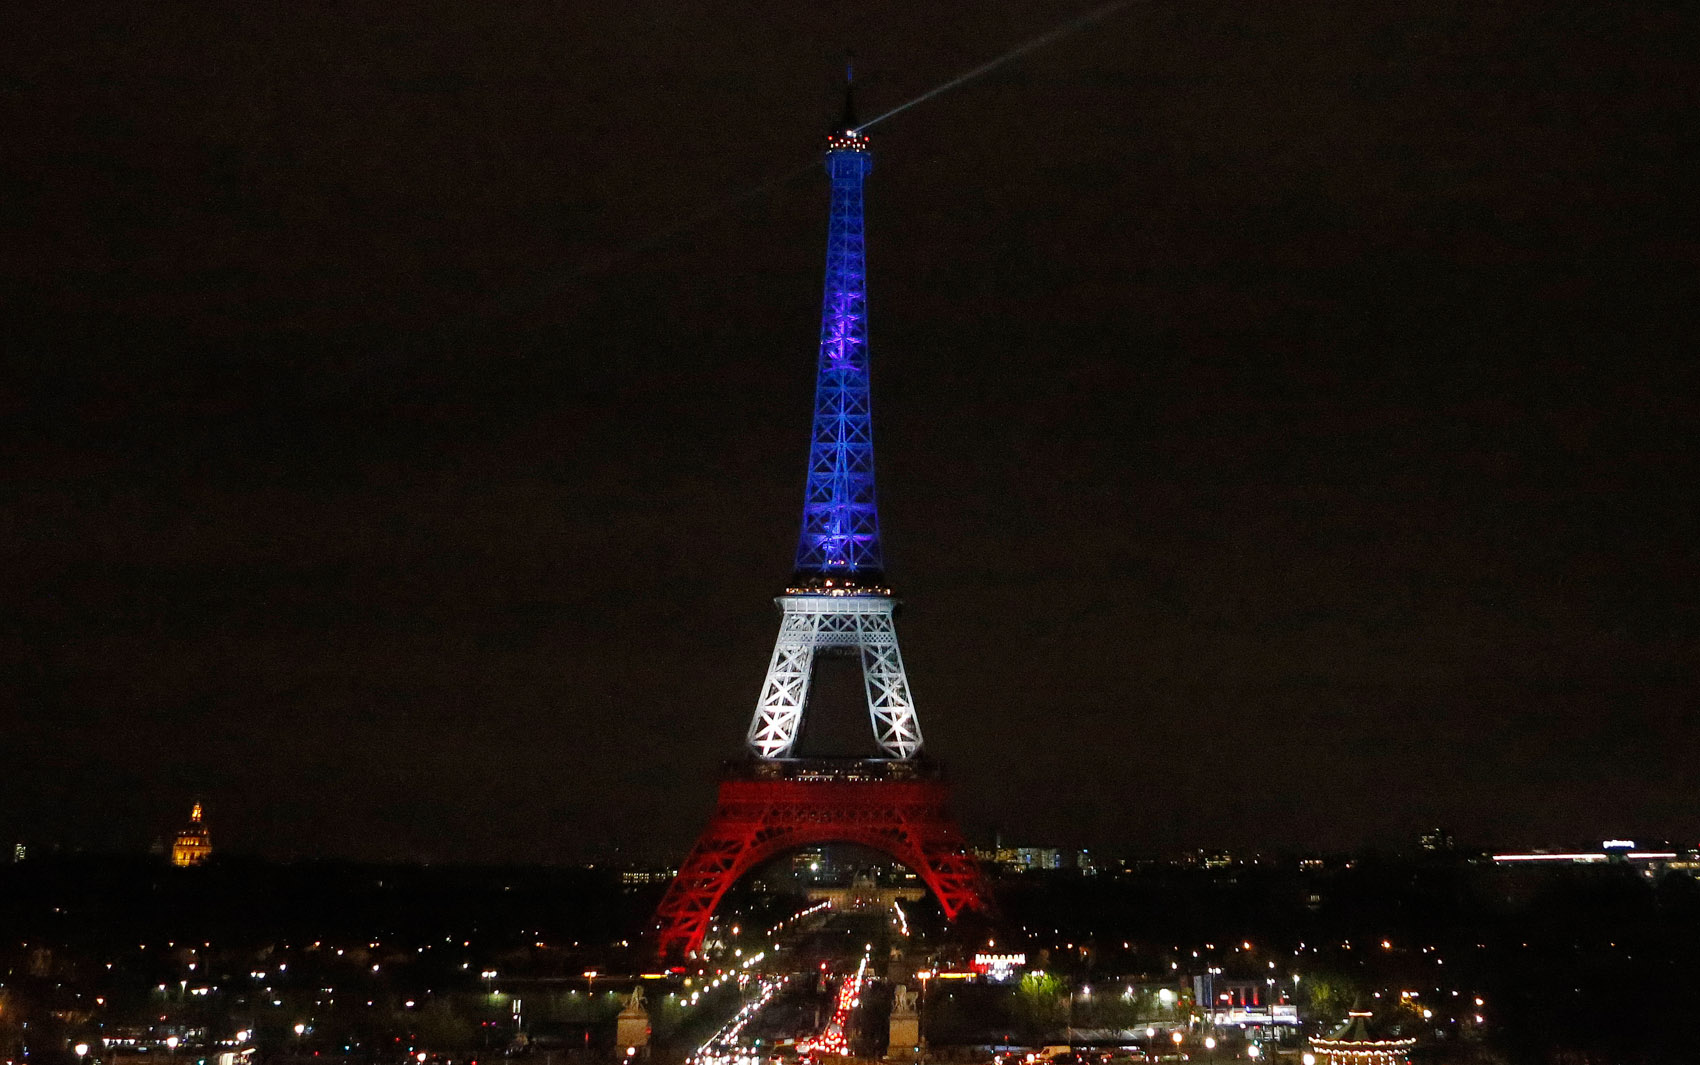 The Eiffel Tower is illuminated in the French national colors red, white and blue in honor of the victims of the terror attacks last Friday in Paris, Monday, Nov. 16, 2015. France is urging its European partners to move swiftly to boost intelligence sharing, fight arms trafficking and terror financing, and strengthen border security in the wake of the Paris attacks. (AP Photo/Frank Augstein)